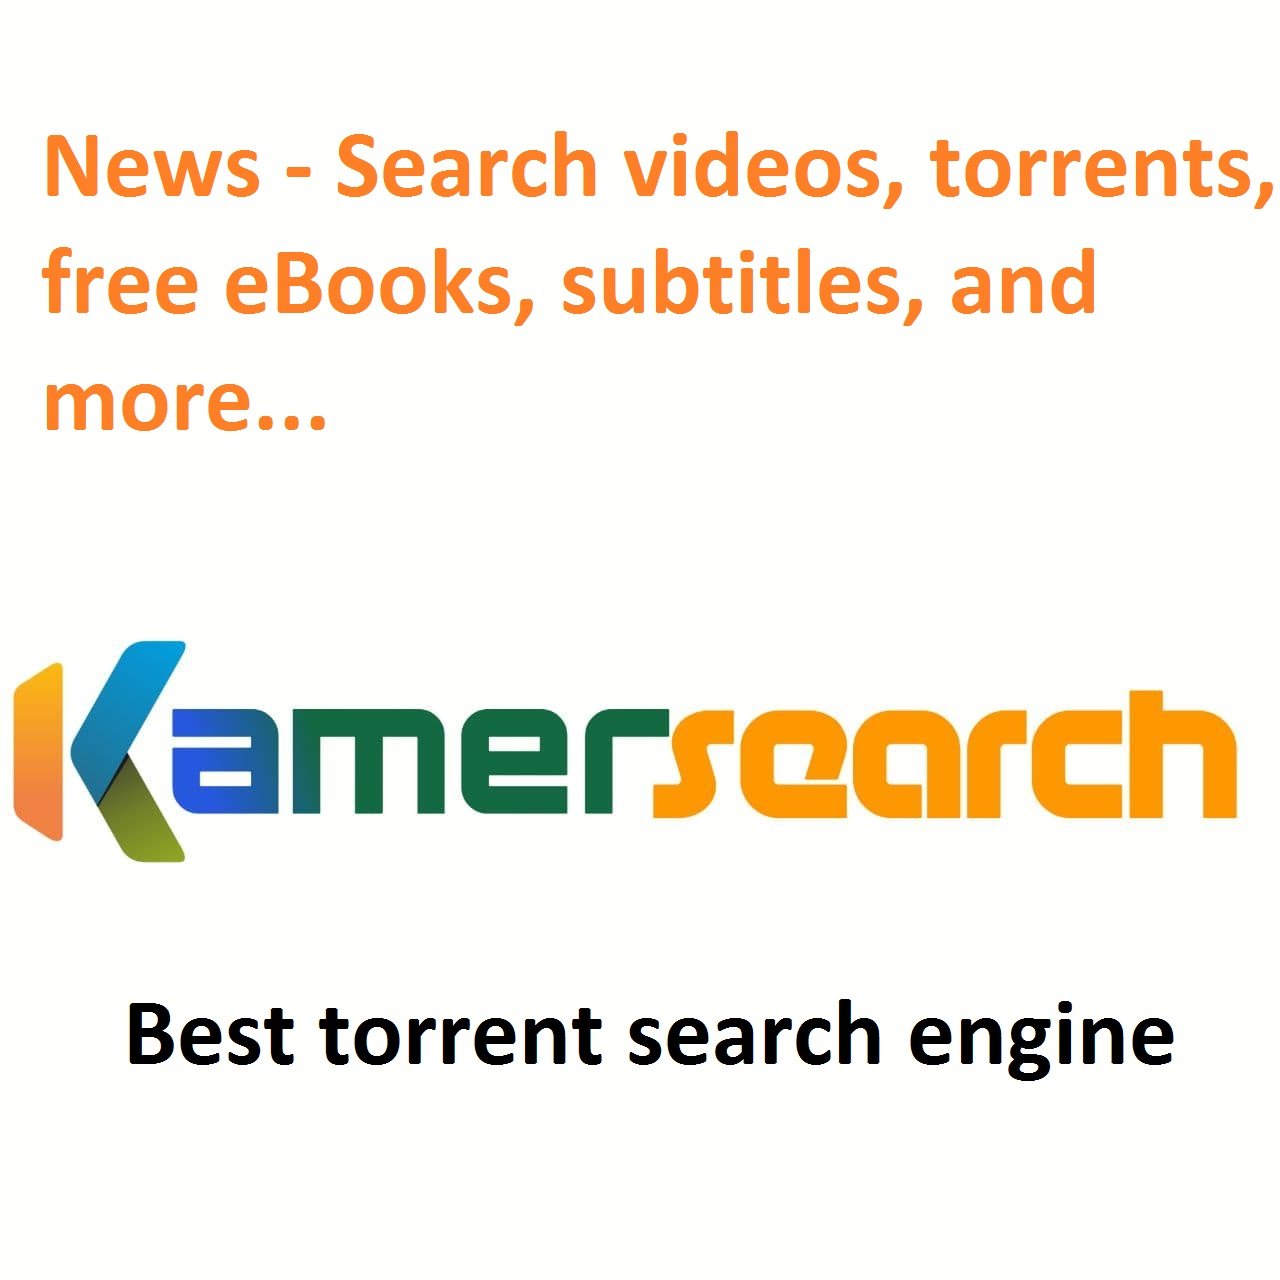 kamersearch - best torrent search engine to use in 2021